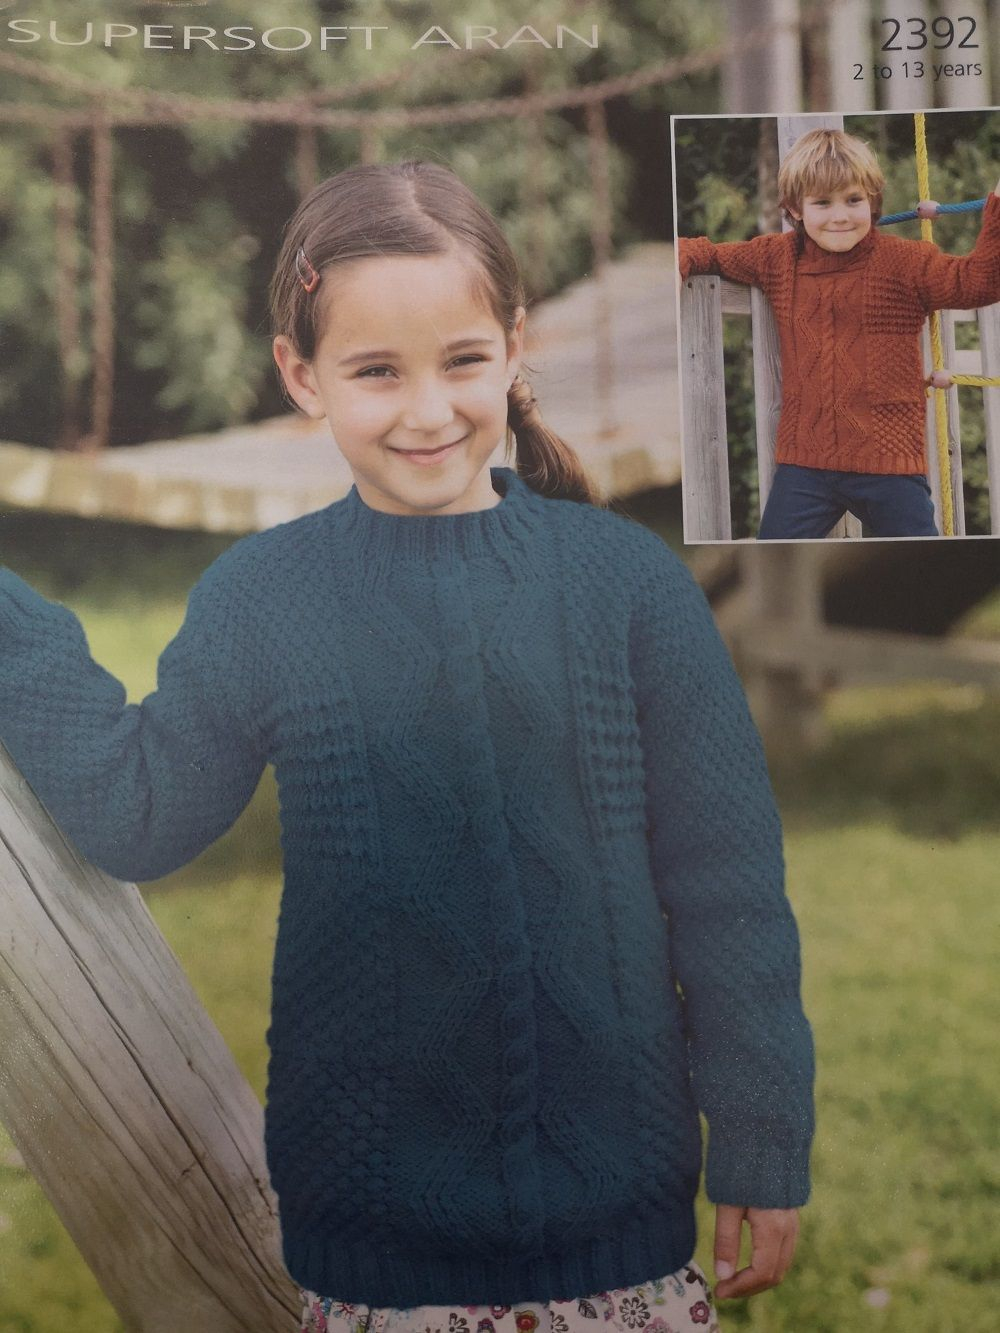 Childrens Aran Knitting Patterns Sirdar Childrens Sweaters Aran Knitting Pattern 2392